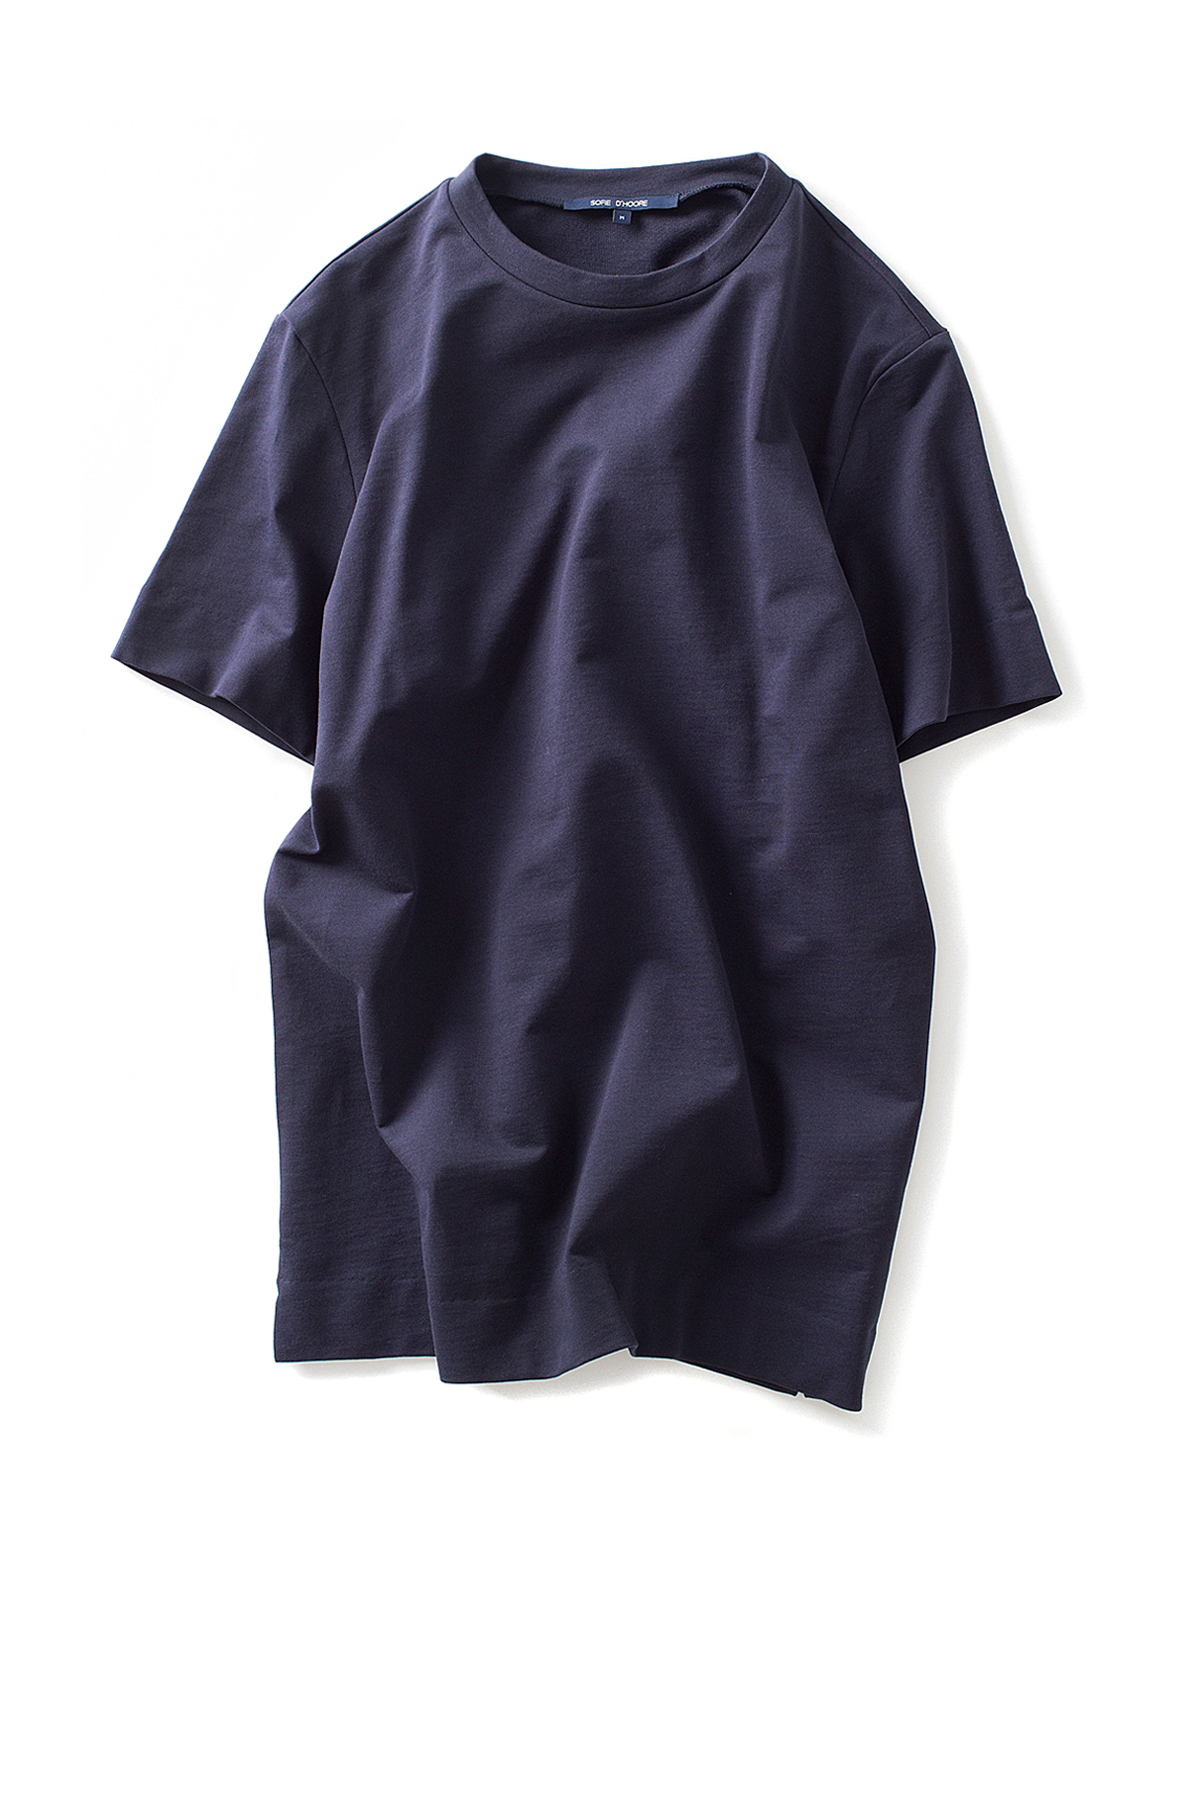 Sofie D'Hoore : Tune Fine Cotton Fleece T-Shirt (Marine)